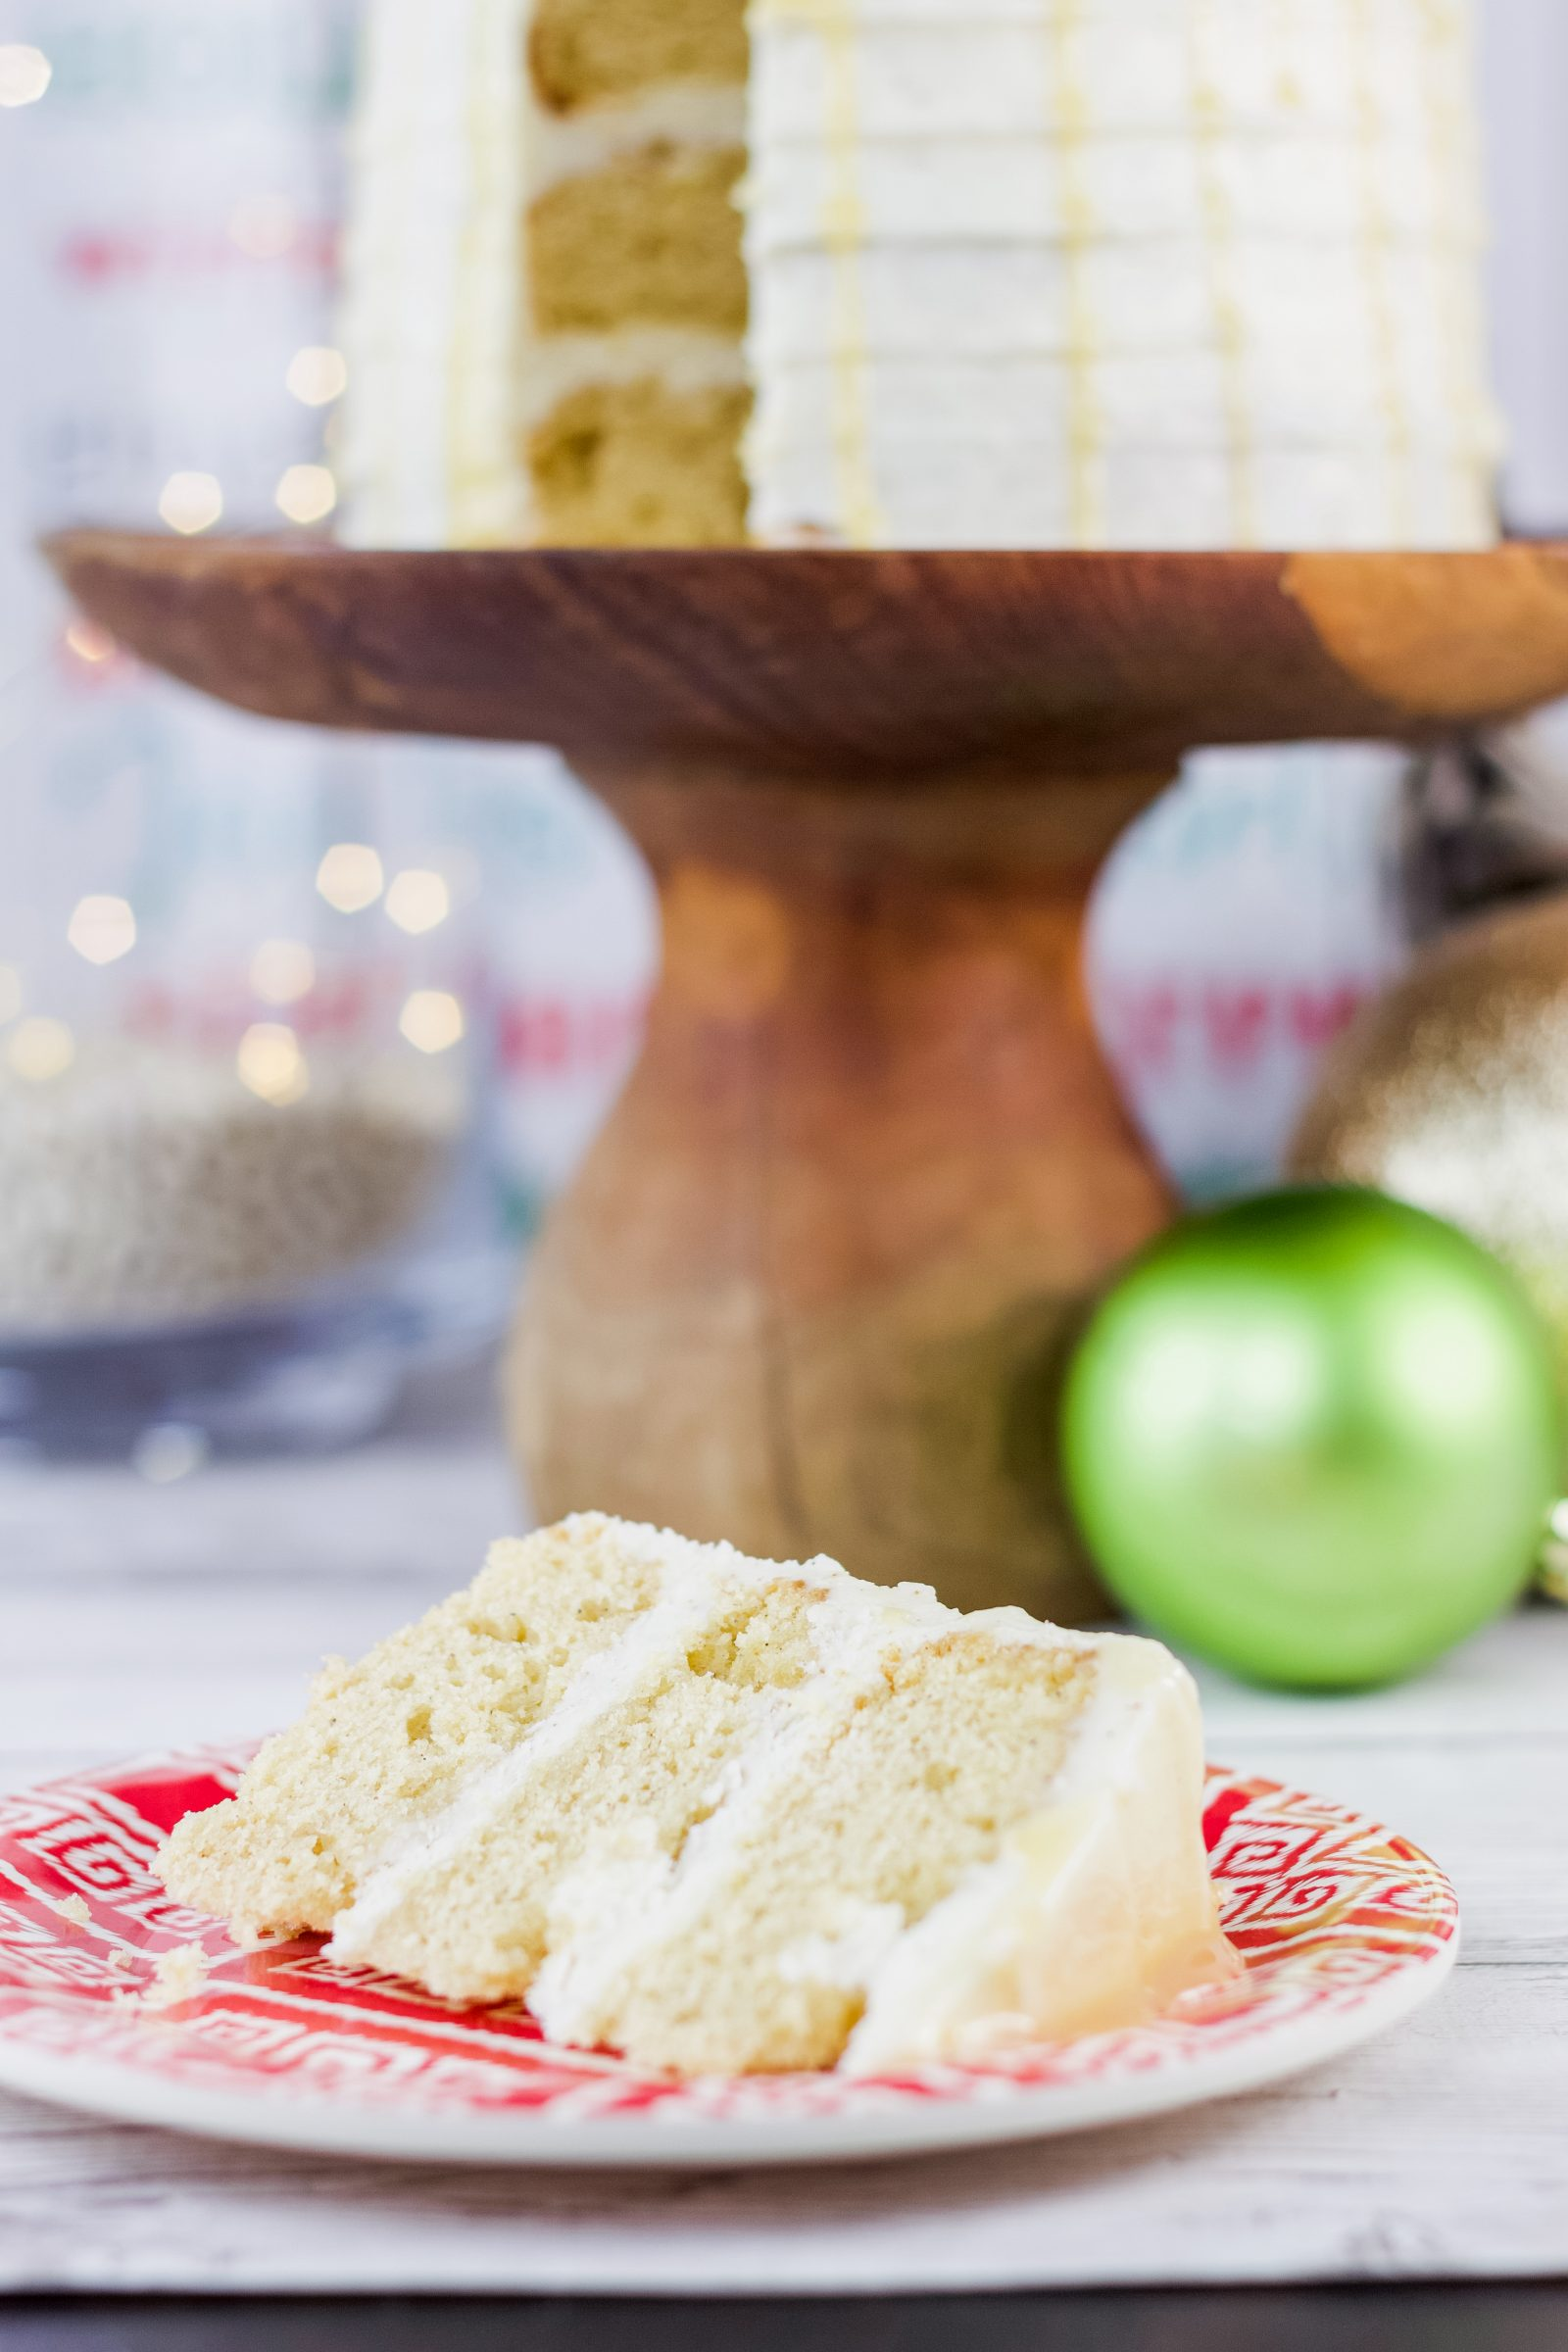 This eggnog cake recipe is everything you need to get into the holiday spirit! Topped with a rum simple syrup and cream cheese frosting, it's a must try! Find the recipe on www.Embellishmints.com